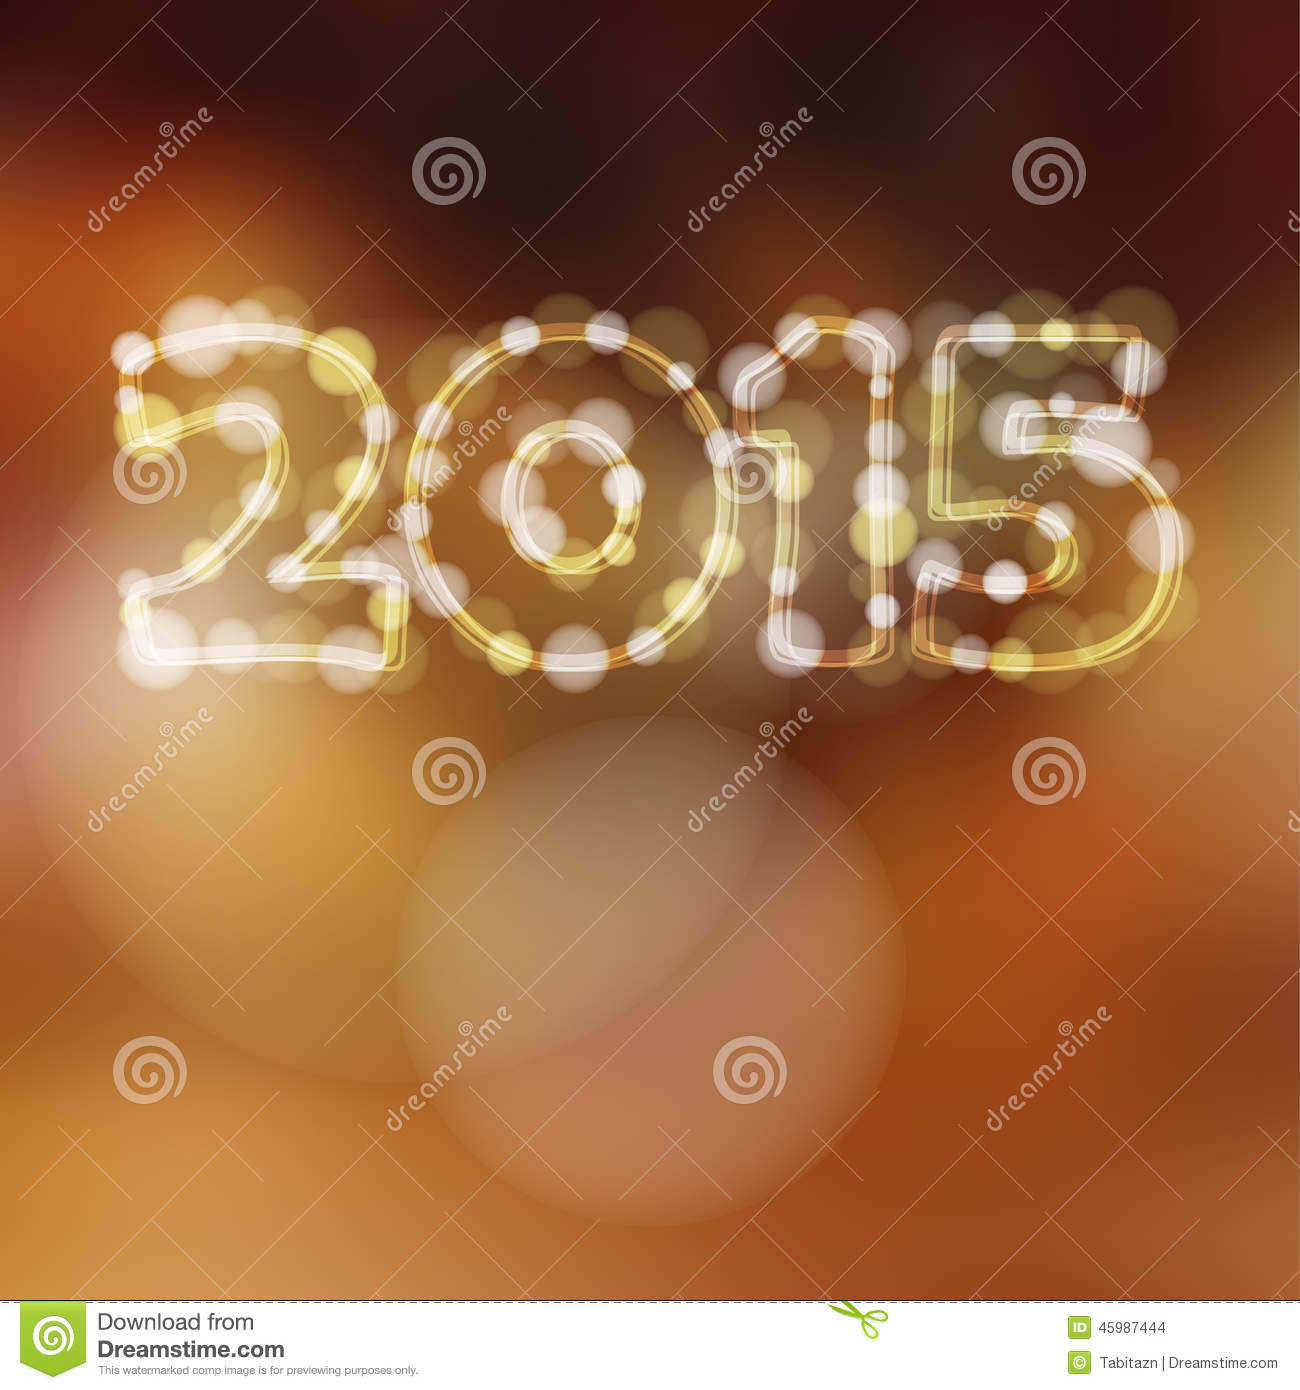 Year Greeting Card 2015 Glitter Lights Stock Vector   Image  45987444